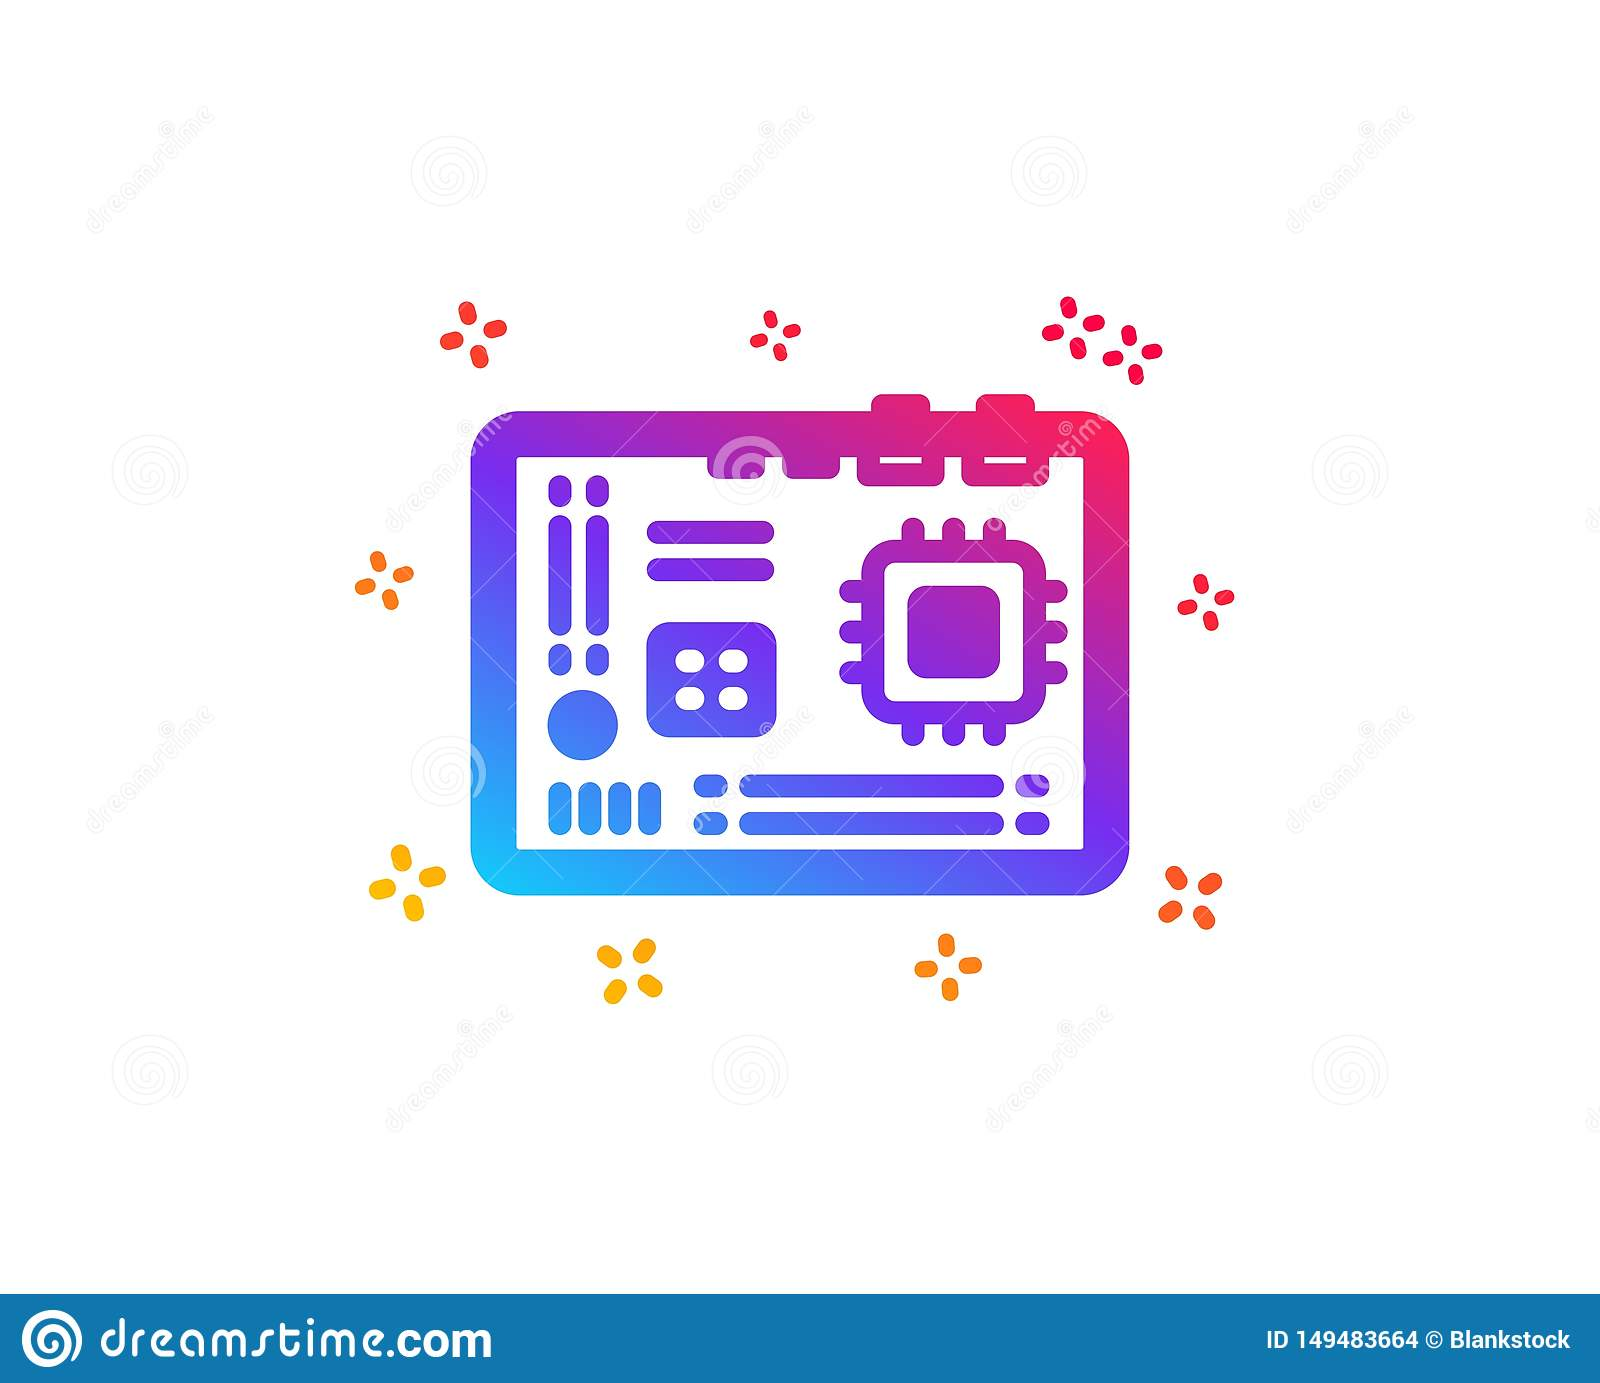 Motherboard icon. Computer component hardware sign. Vector